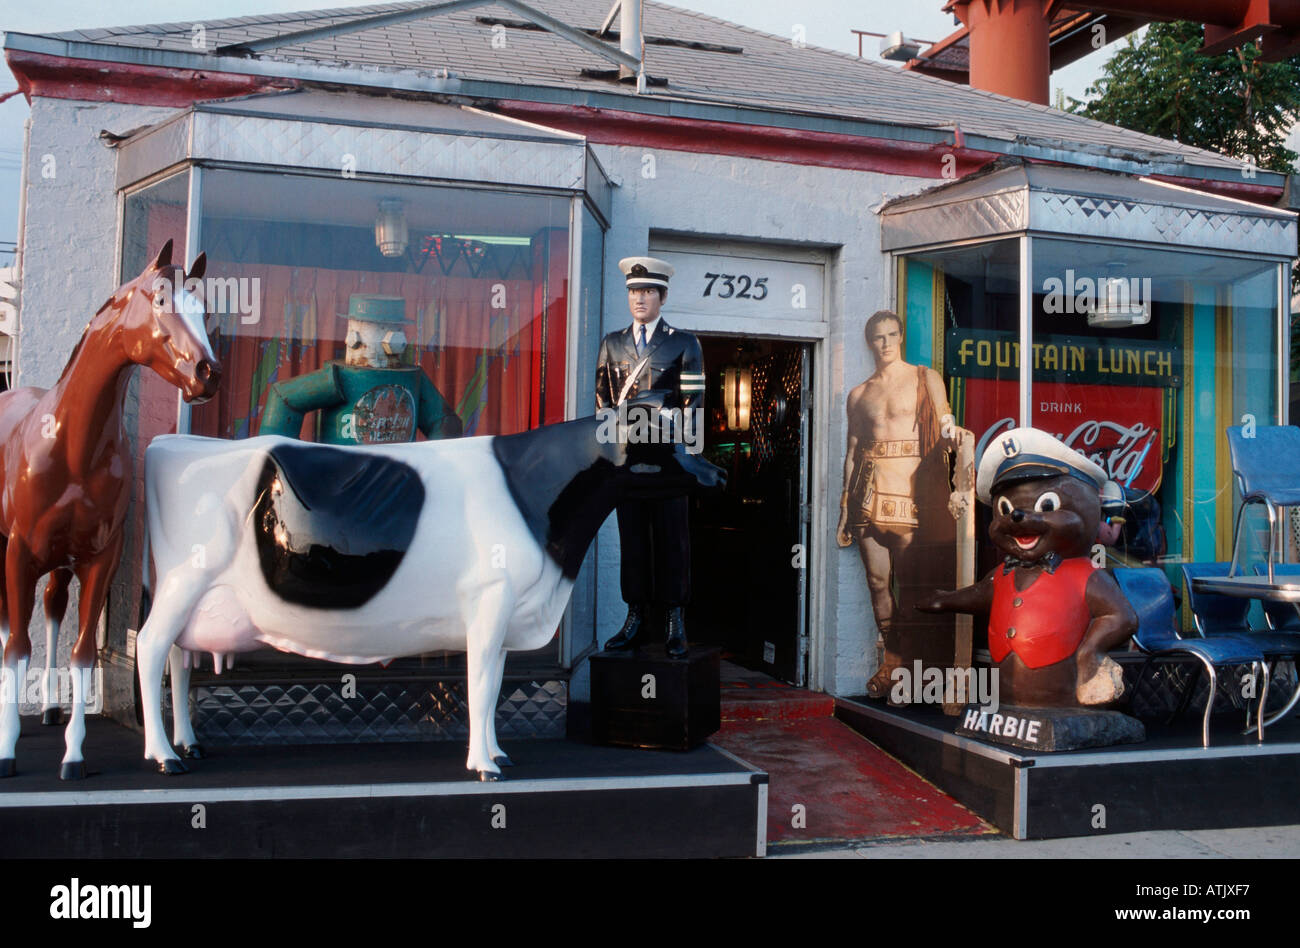 antique shops los angeles Antique shop / Los Angeles Stock Photo: 5333750   Alamy antique shops los angeles